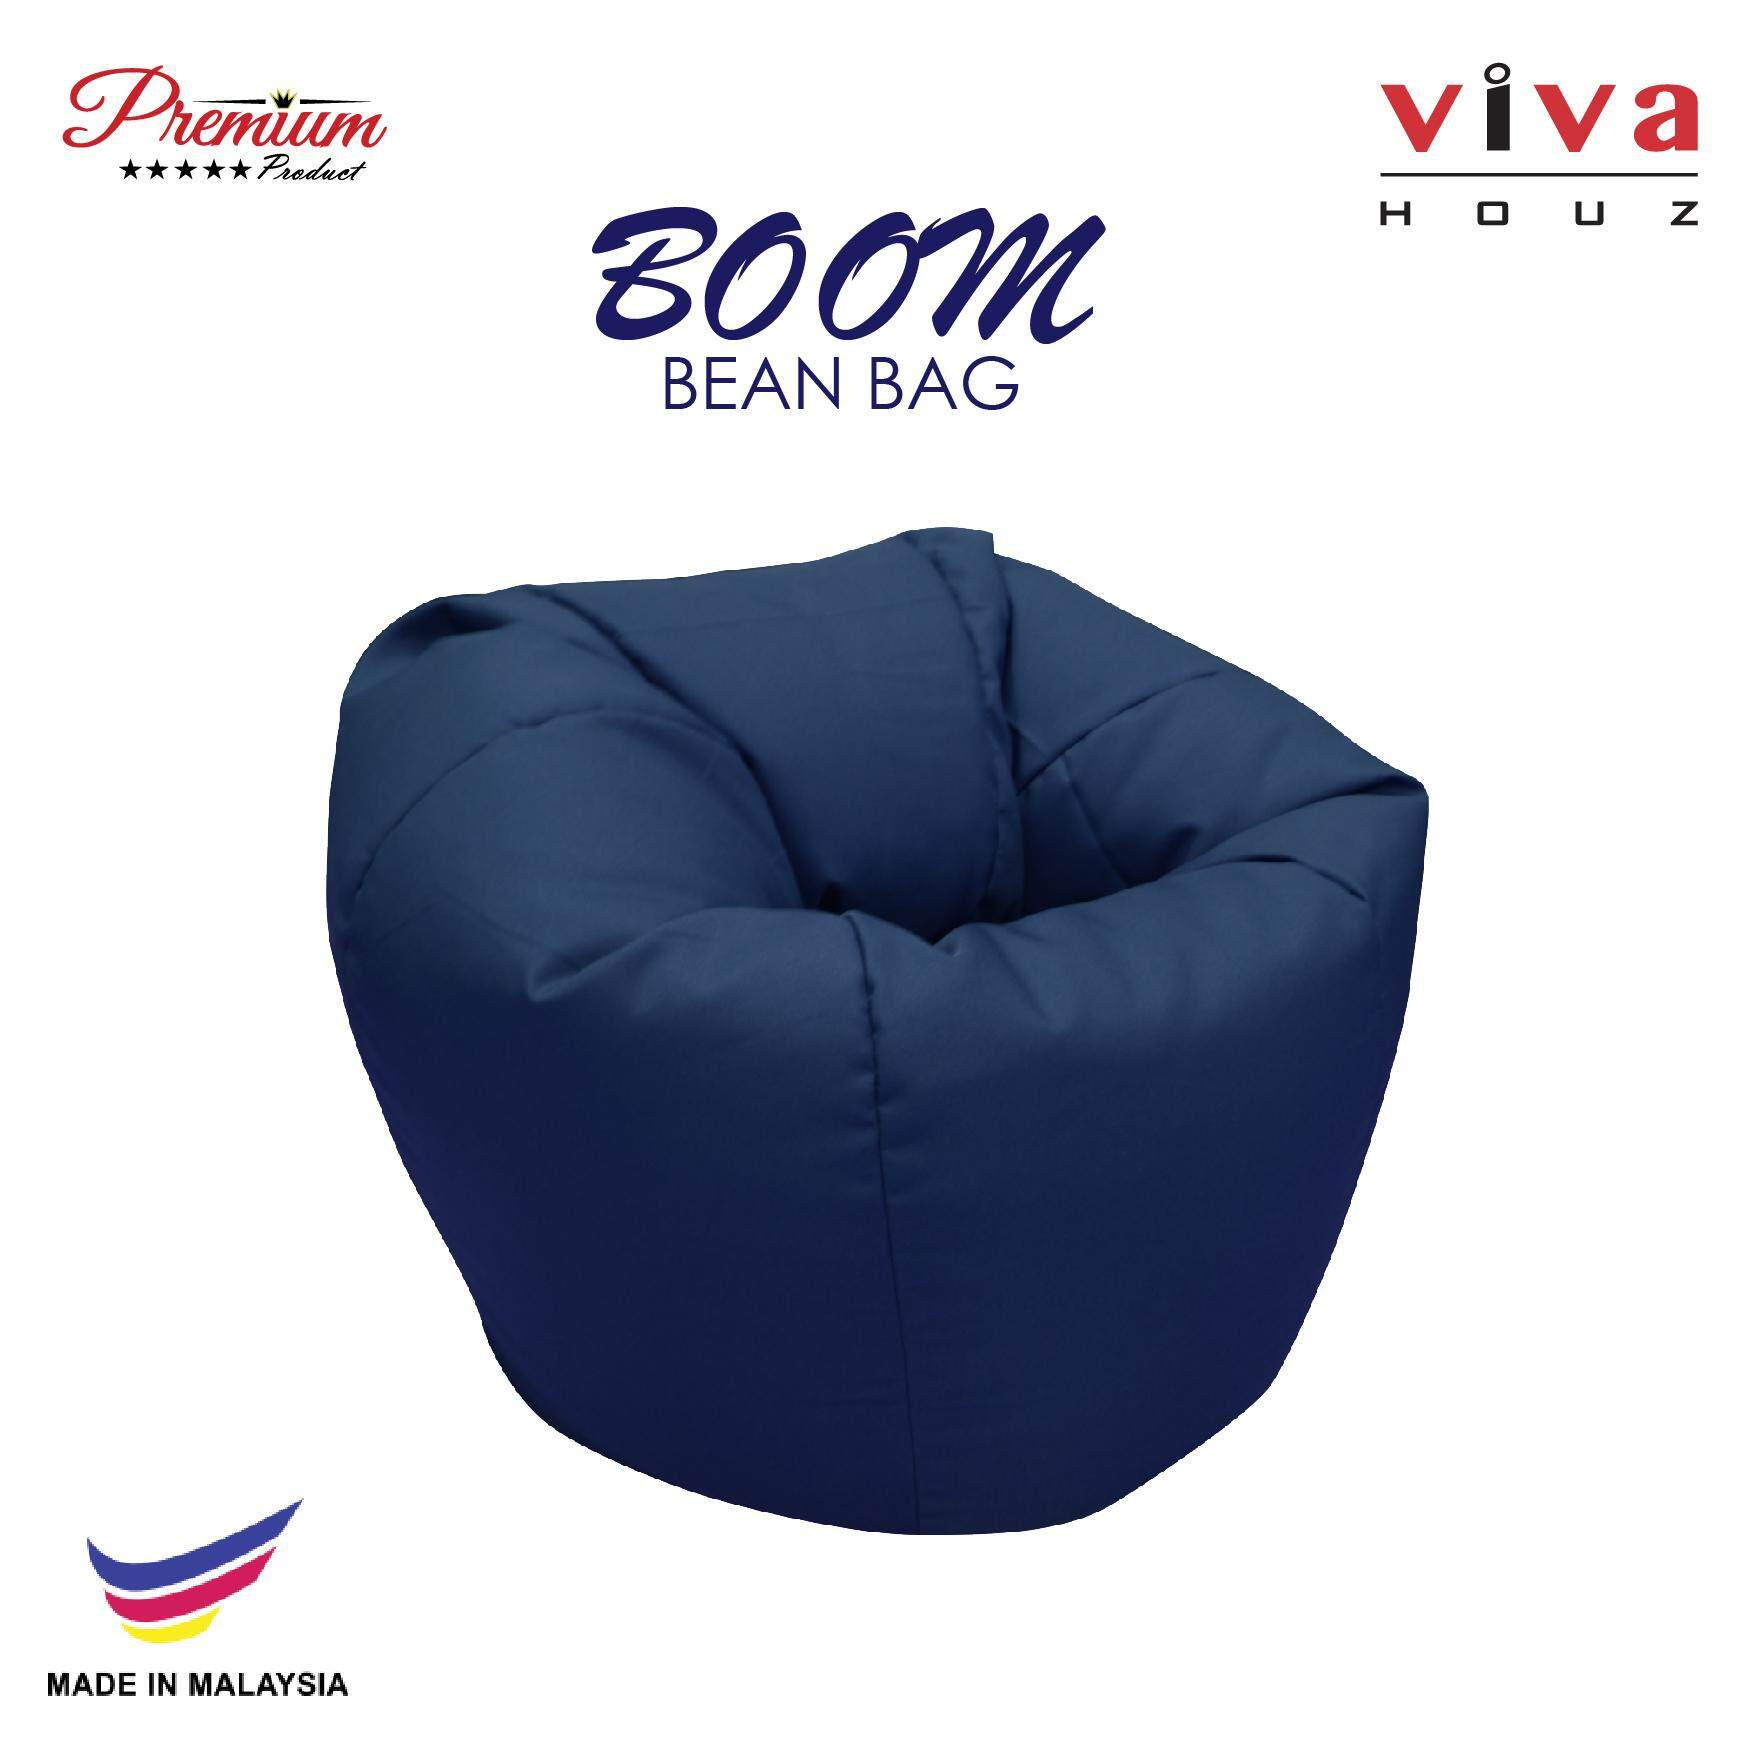 Hot Selling : Viva Houz Boom Bean Bag Pouffe Sofa Chair L Size Navy Blue Made In Malaysia By Viva Living.